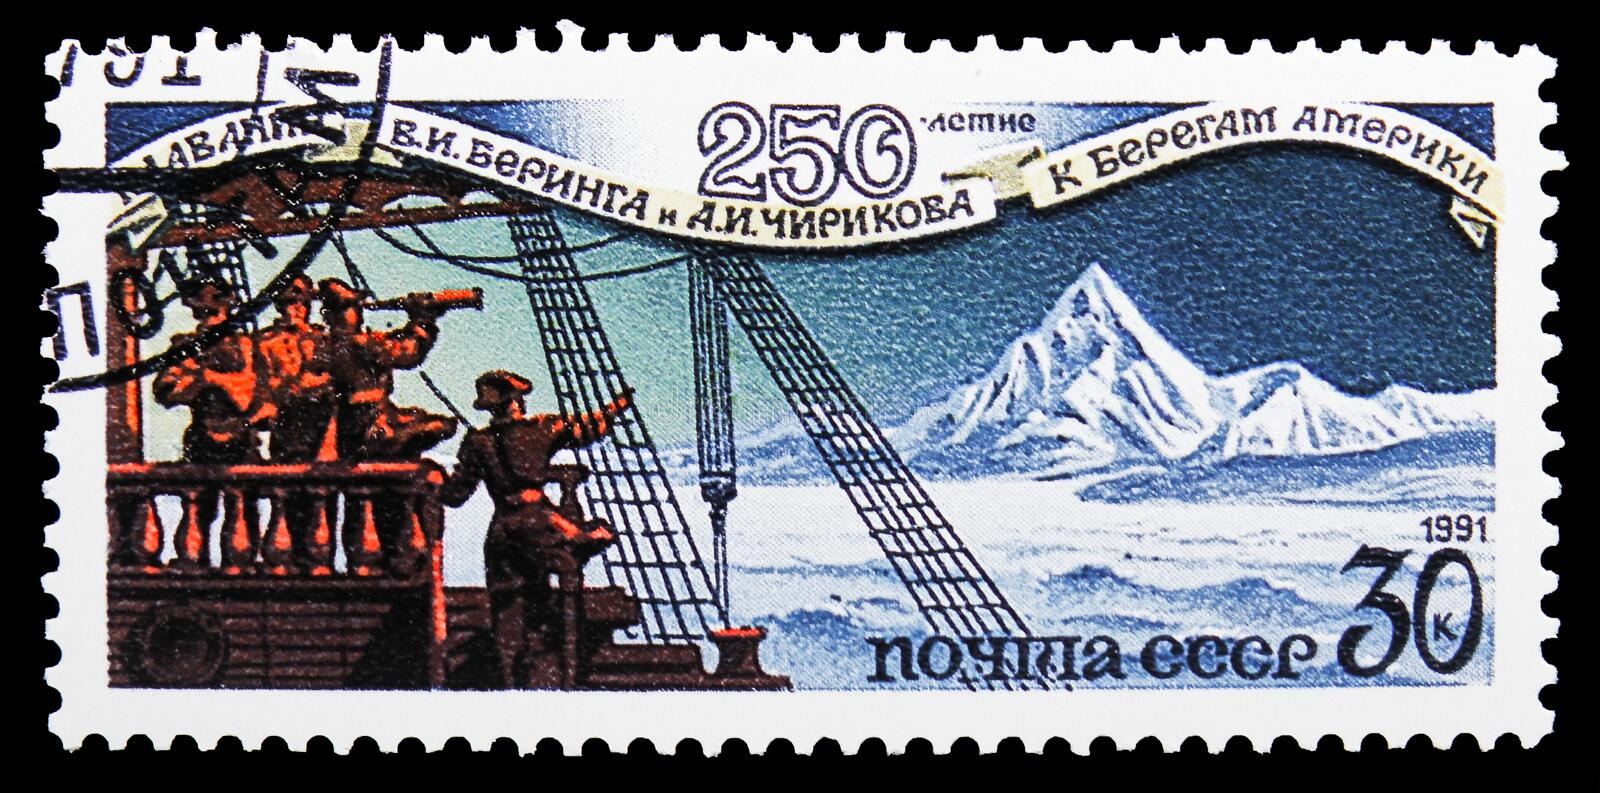 Mariners off the West Coast of Alaska, 250th Anniversary of V. Bering's and A. Chirikov's Expedition, serie, circa 1991. MOSCOW, RUSSIA - OCTOBER 21, 2018: A royalty free stock photography